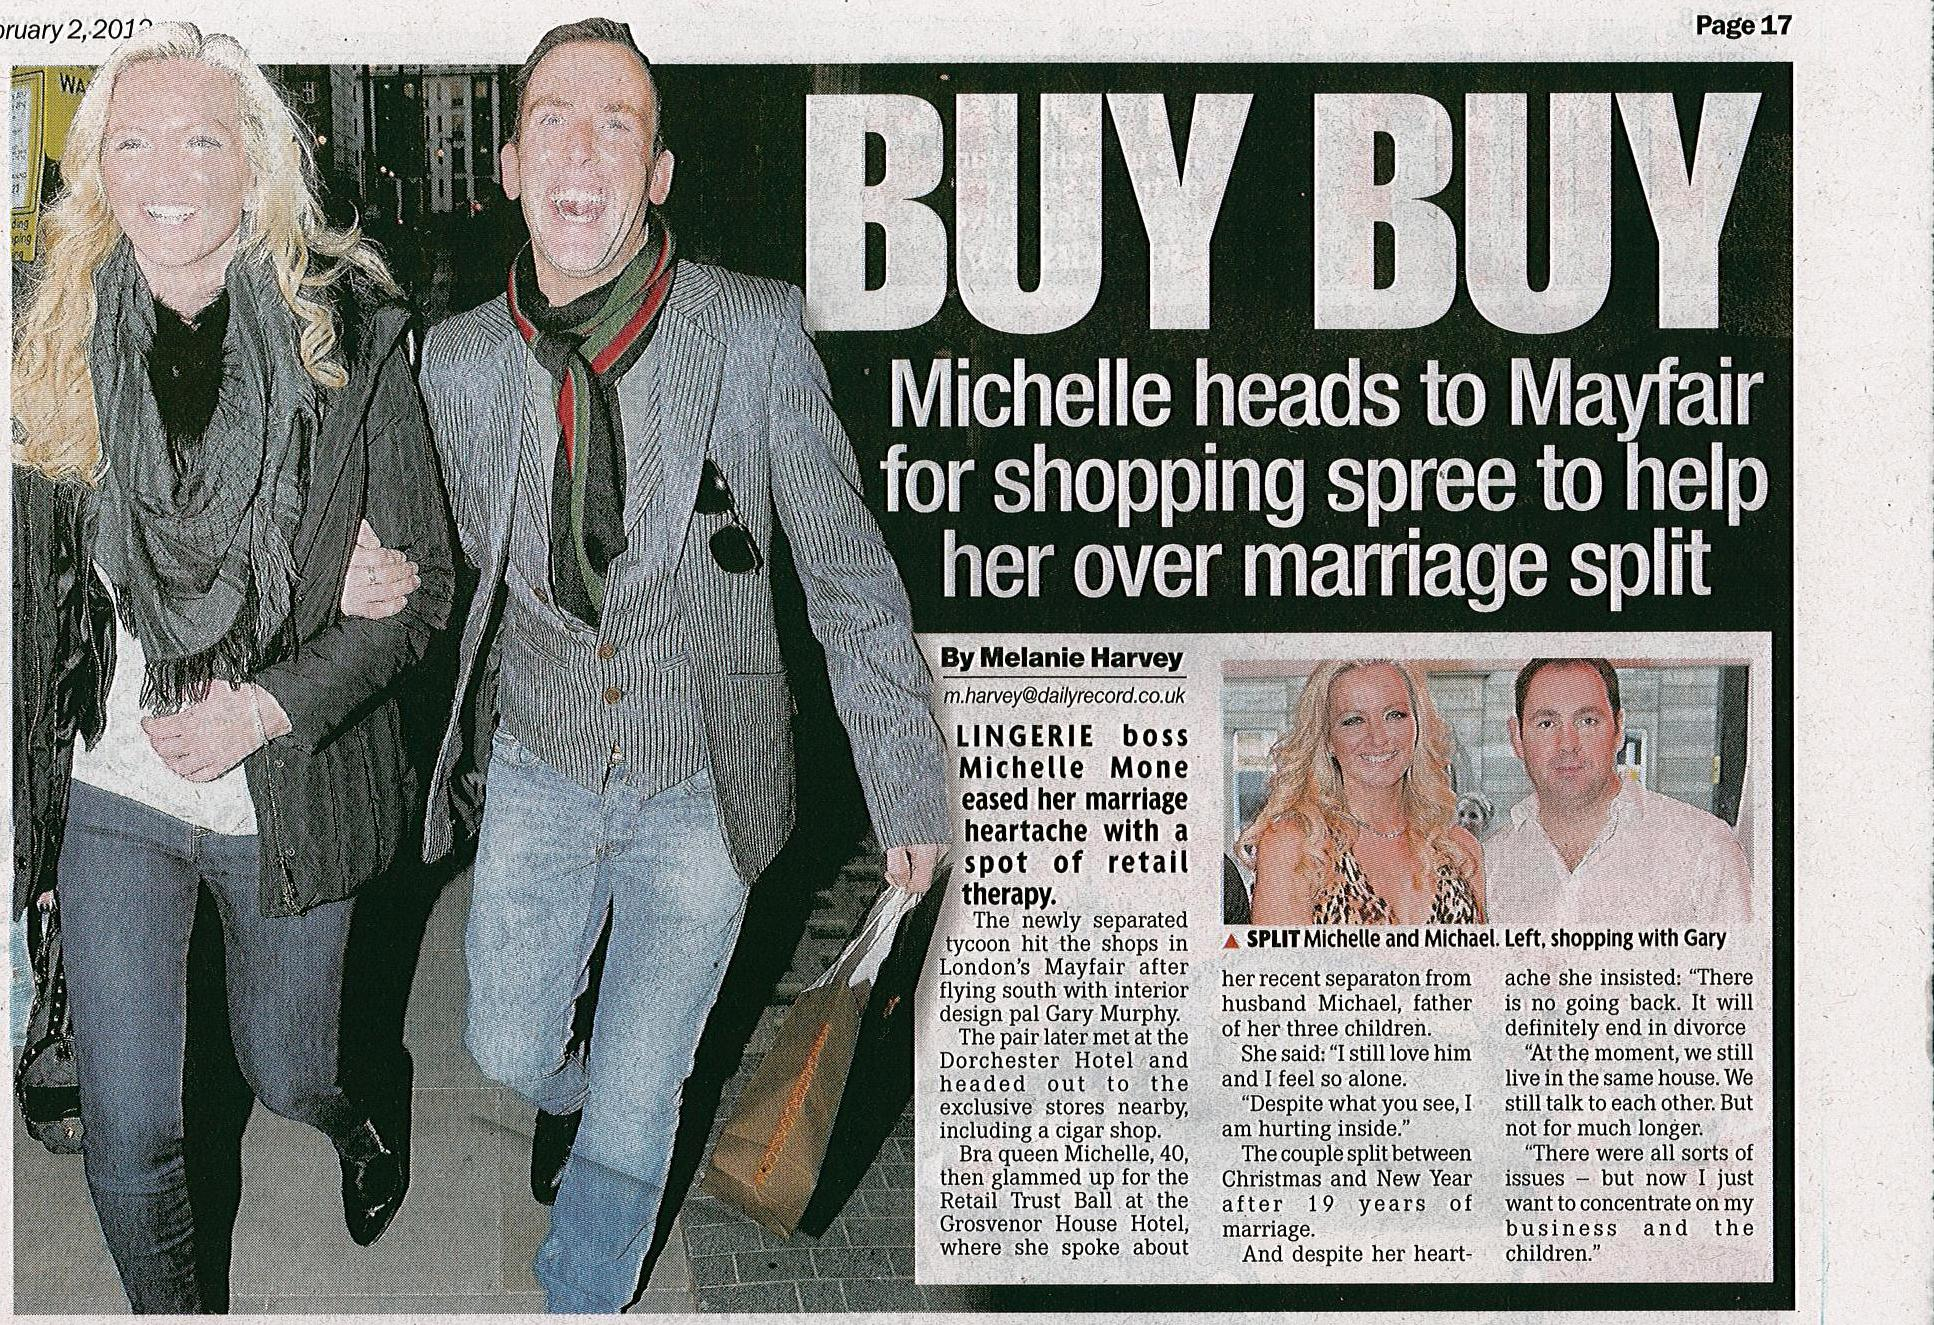 DailyRecord-Michelle-Mone-Thurs2ndFeb2012